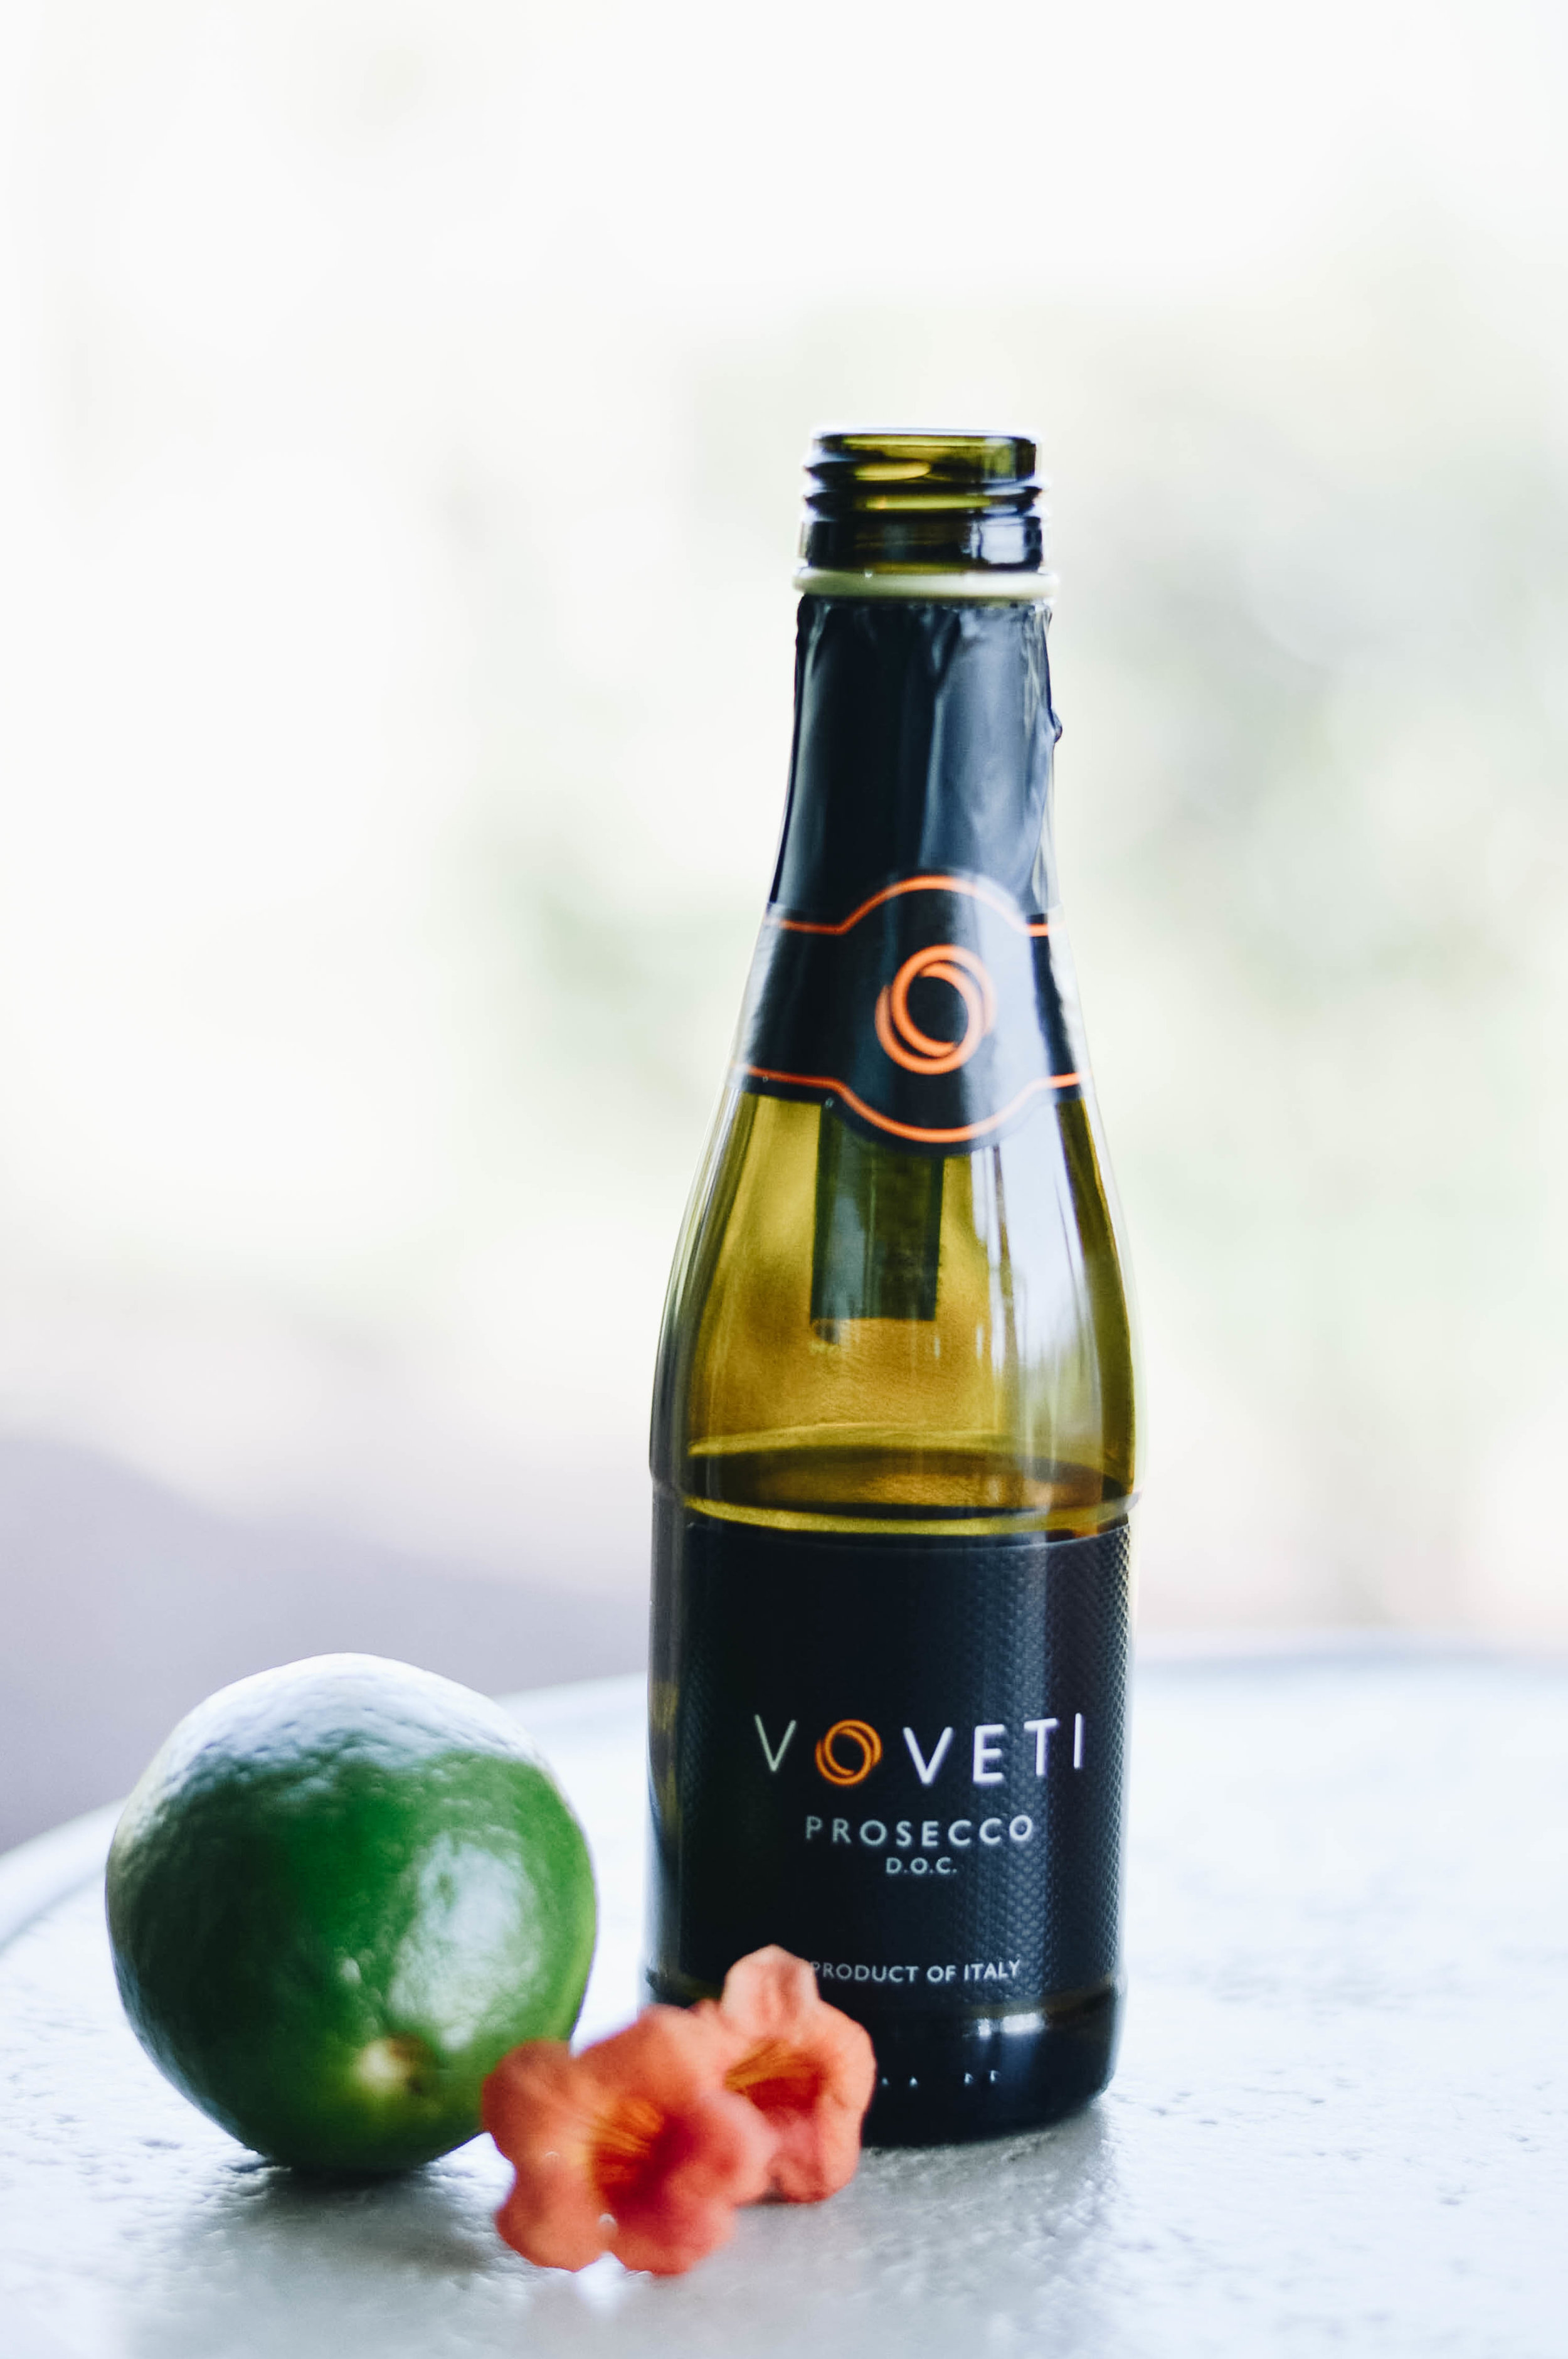 A Modern Take on Classic Wedding Cocktail with Voveti Prosecco via. www.birdieshoots.com